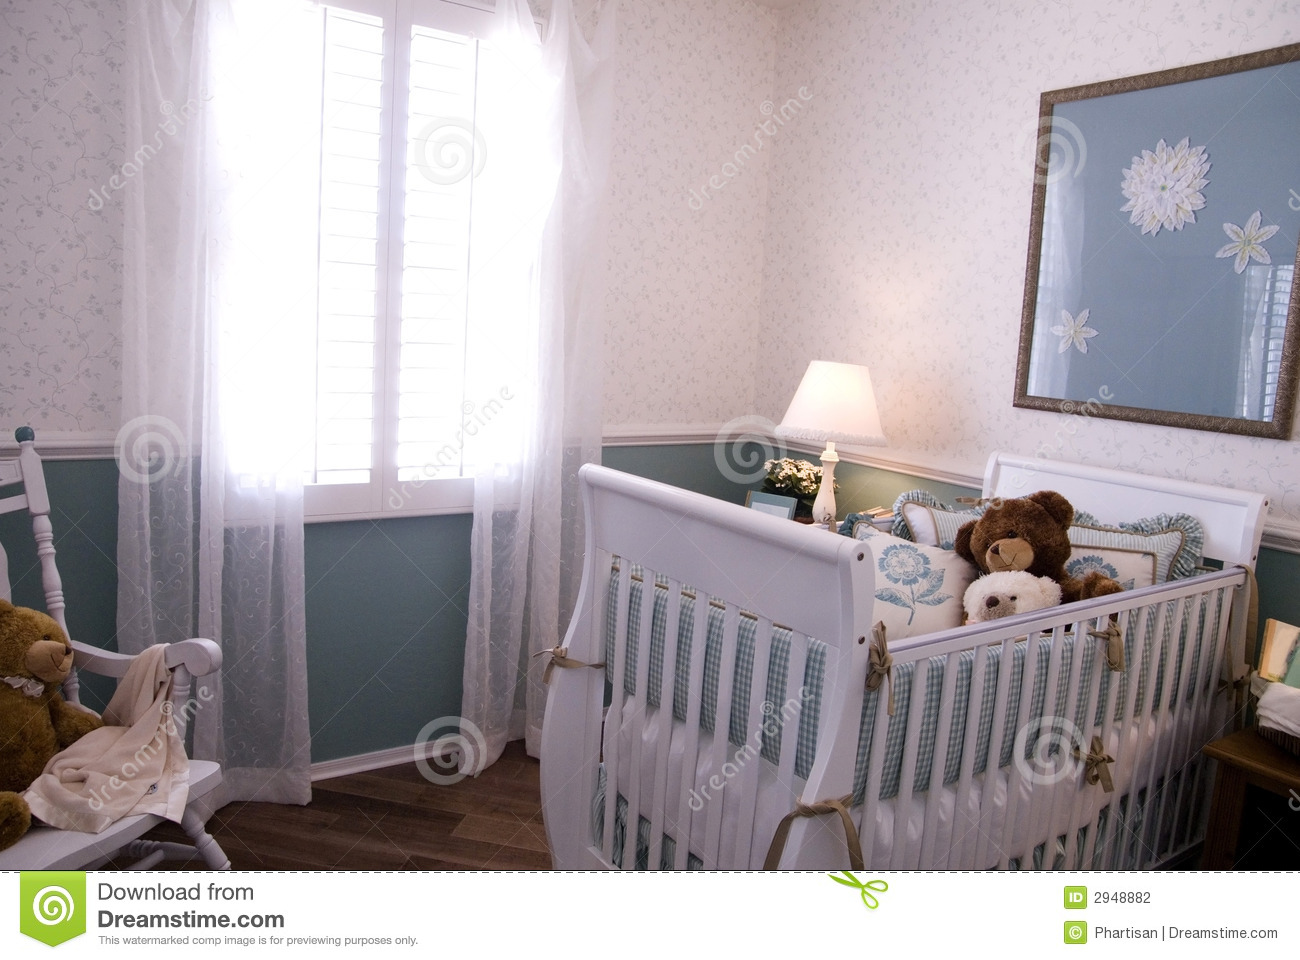 A Crib In A Baby Room Interior Stock Photography Image